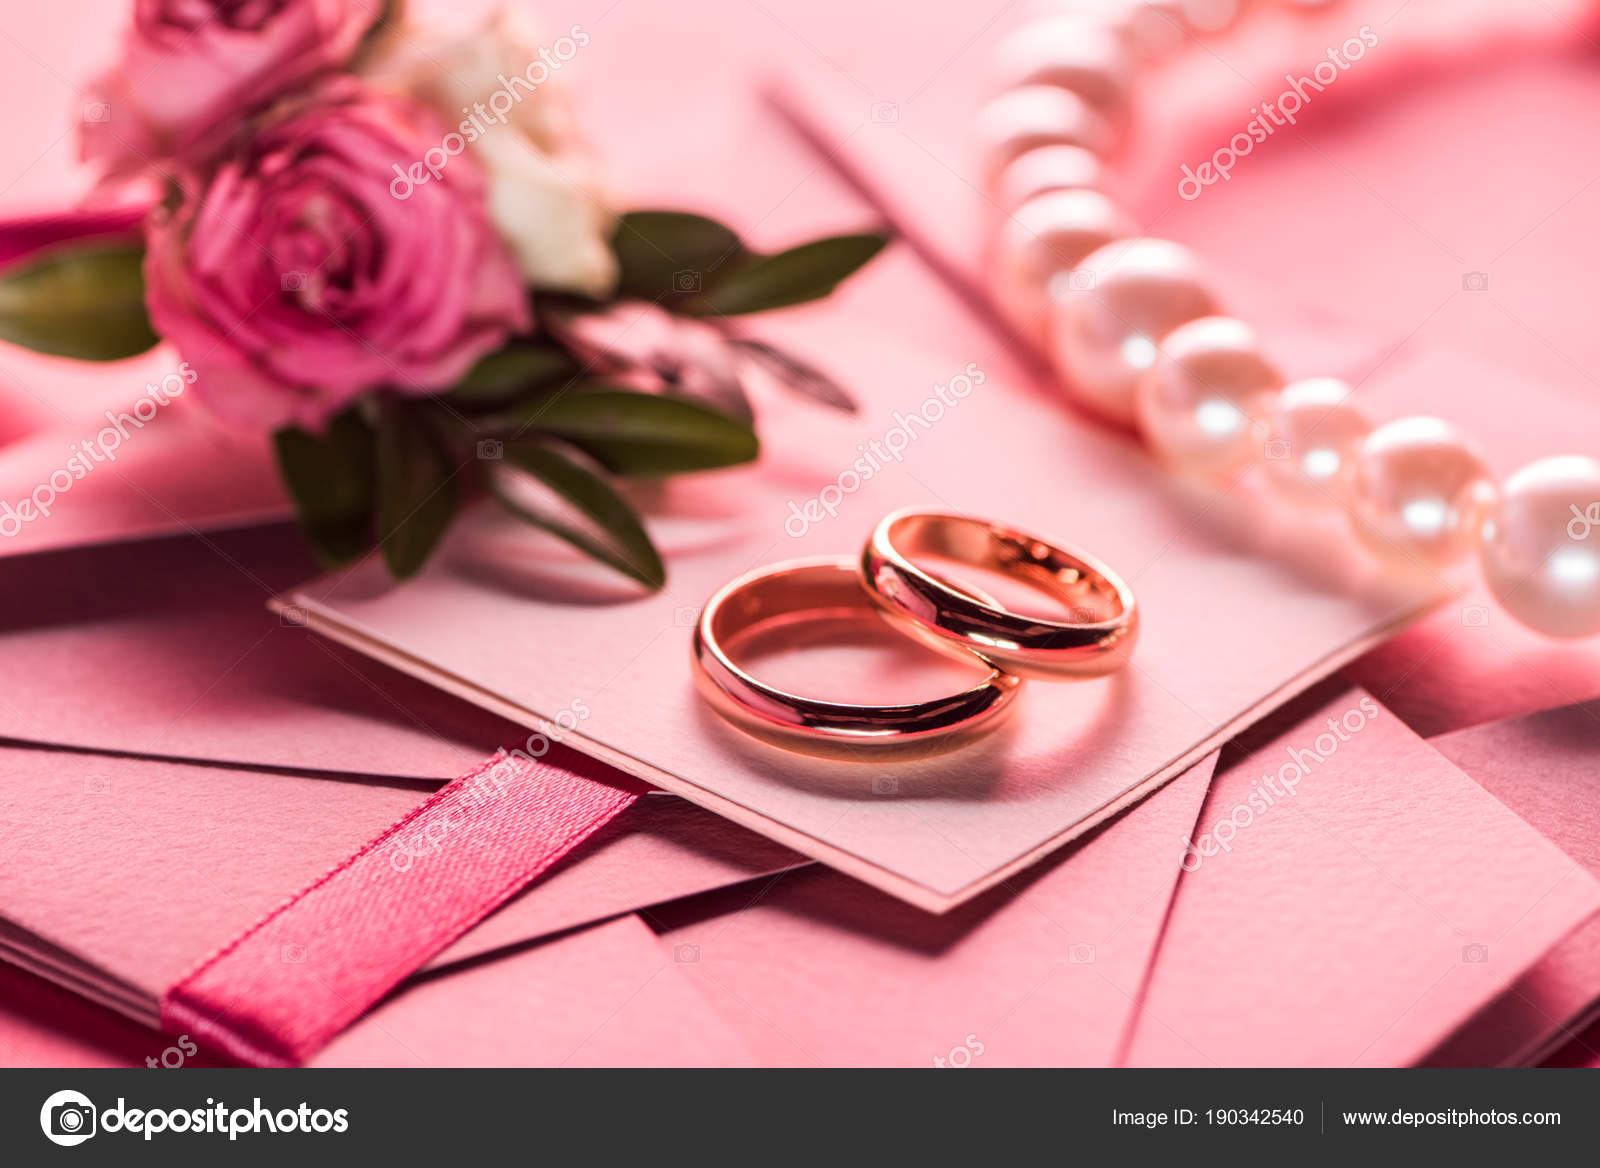 Wedding Rings Pearl Necklace Boutonniere Pink Envelopes Invitations ...